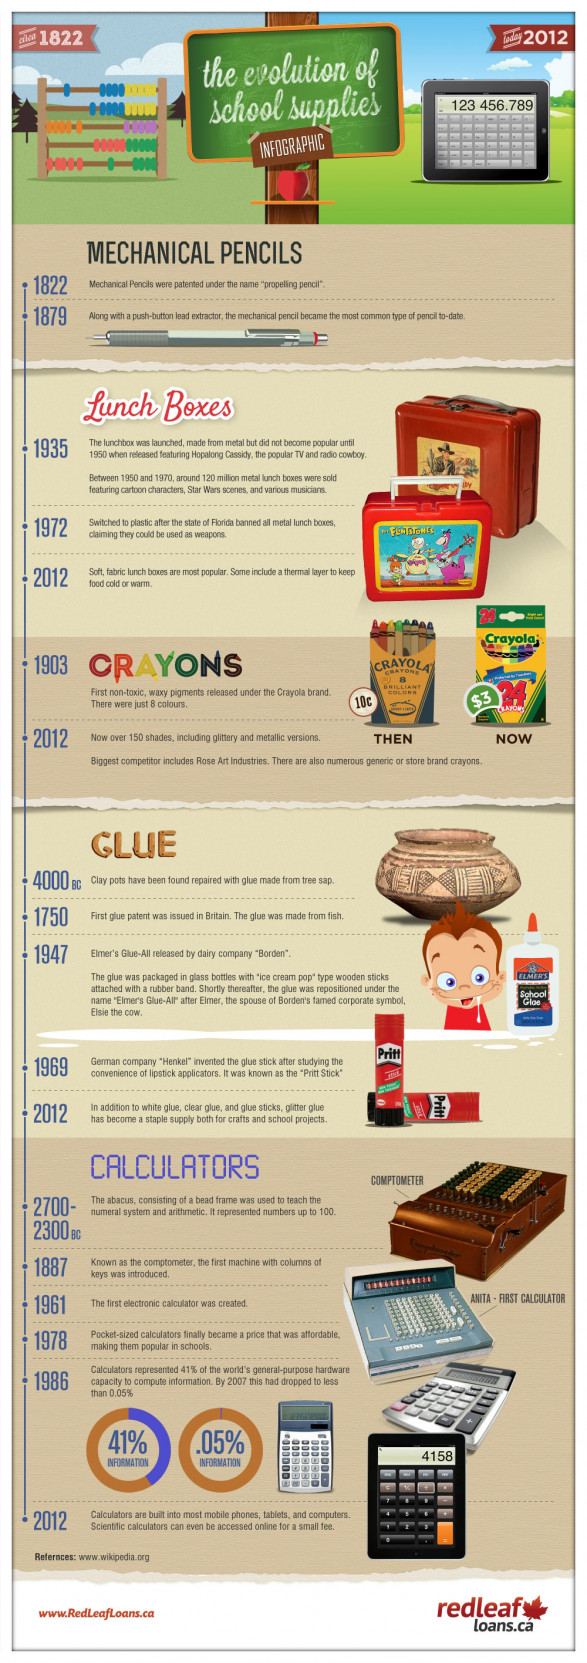 The Evolution of School Supplies